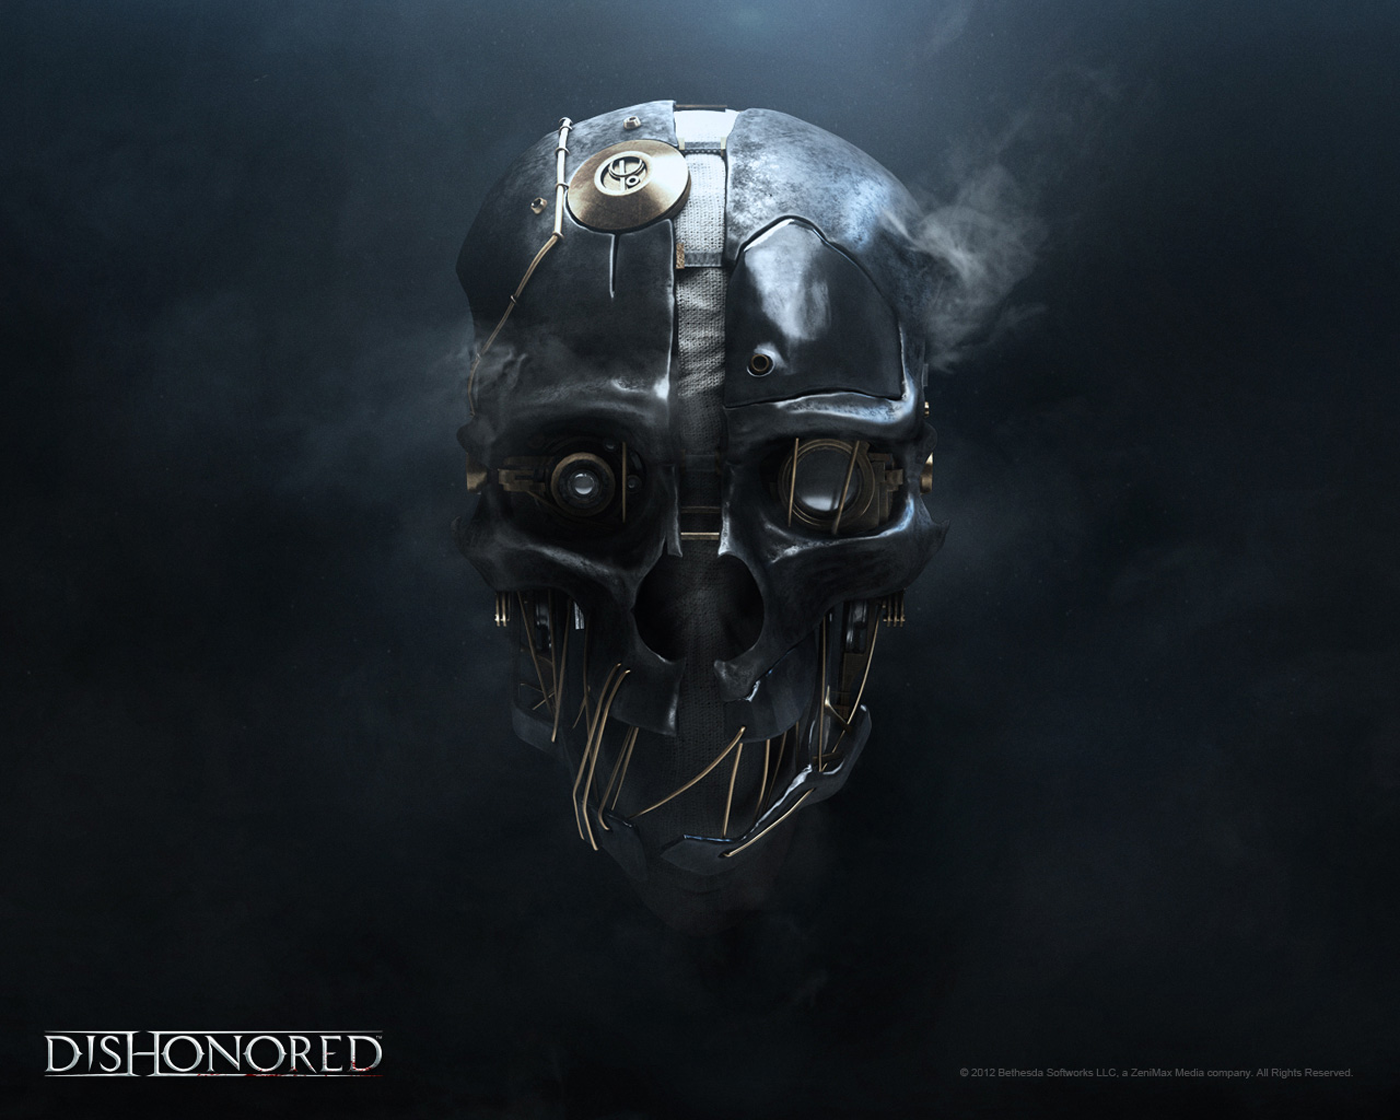 Dishonored Campaign | Digital